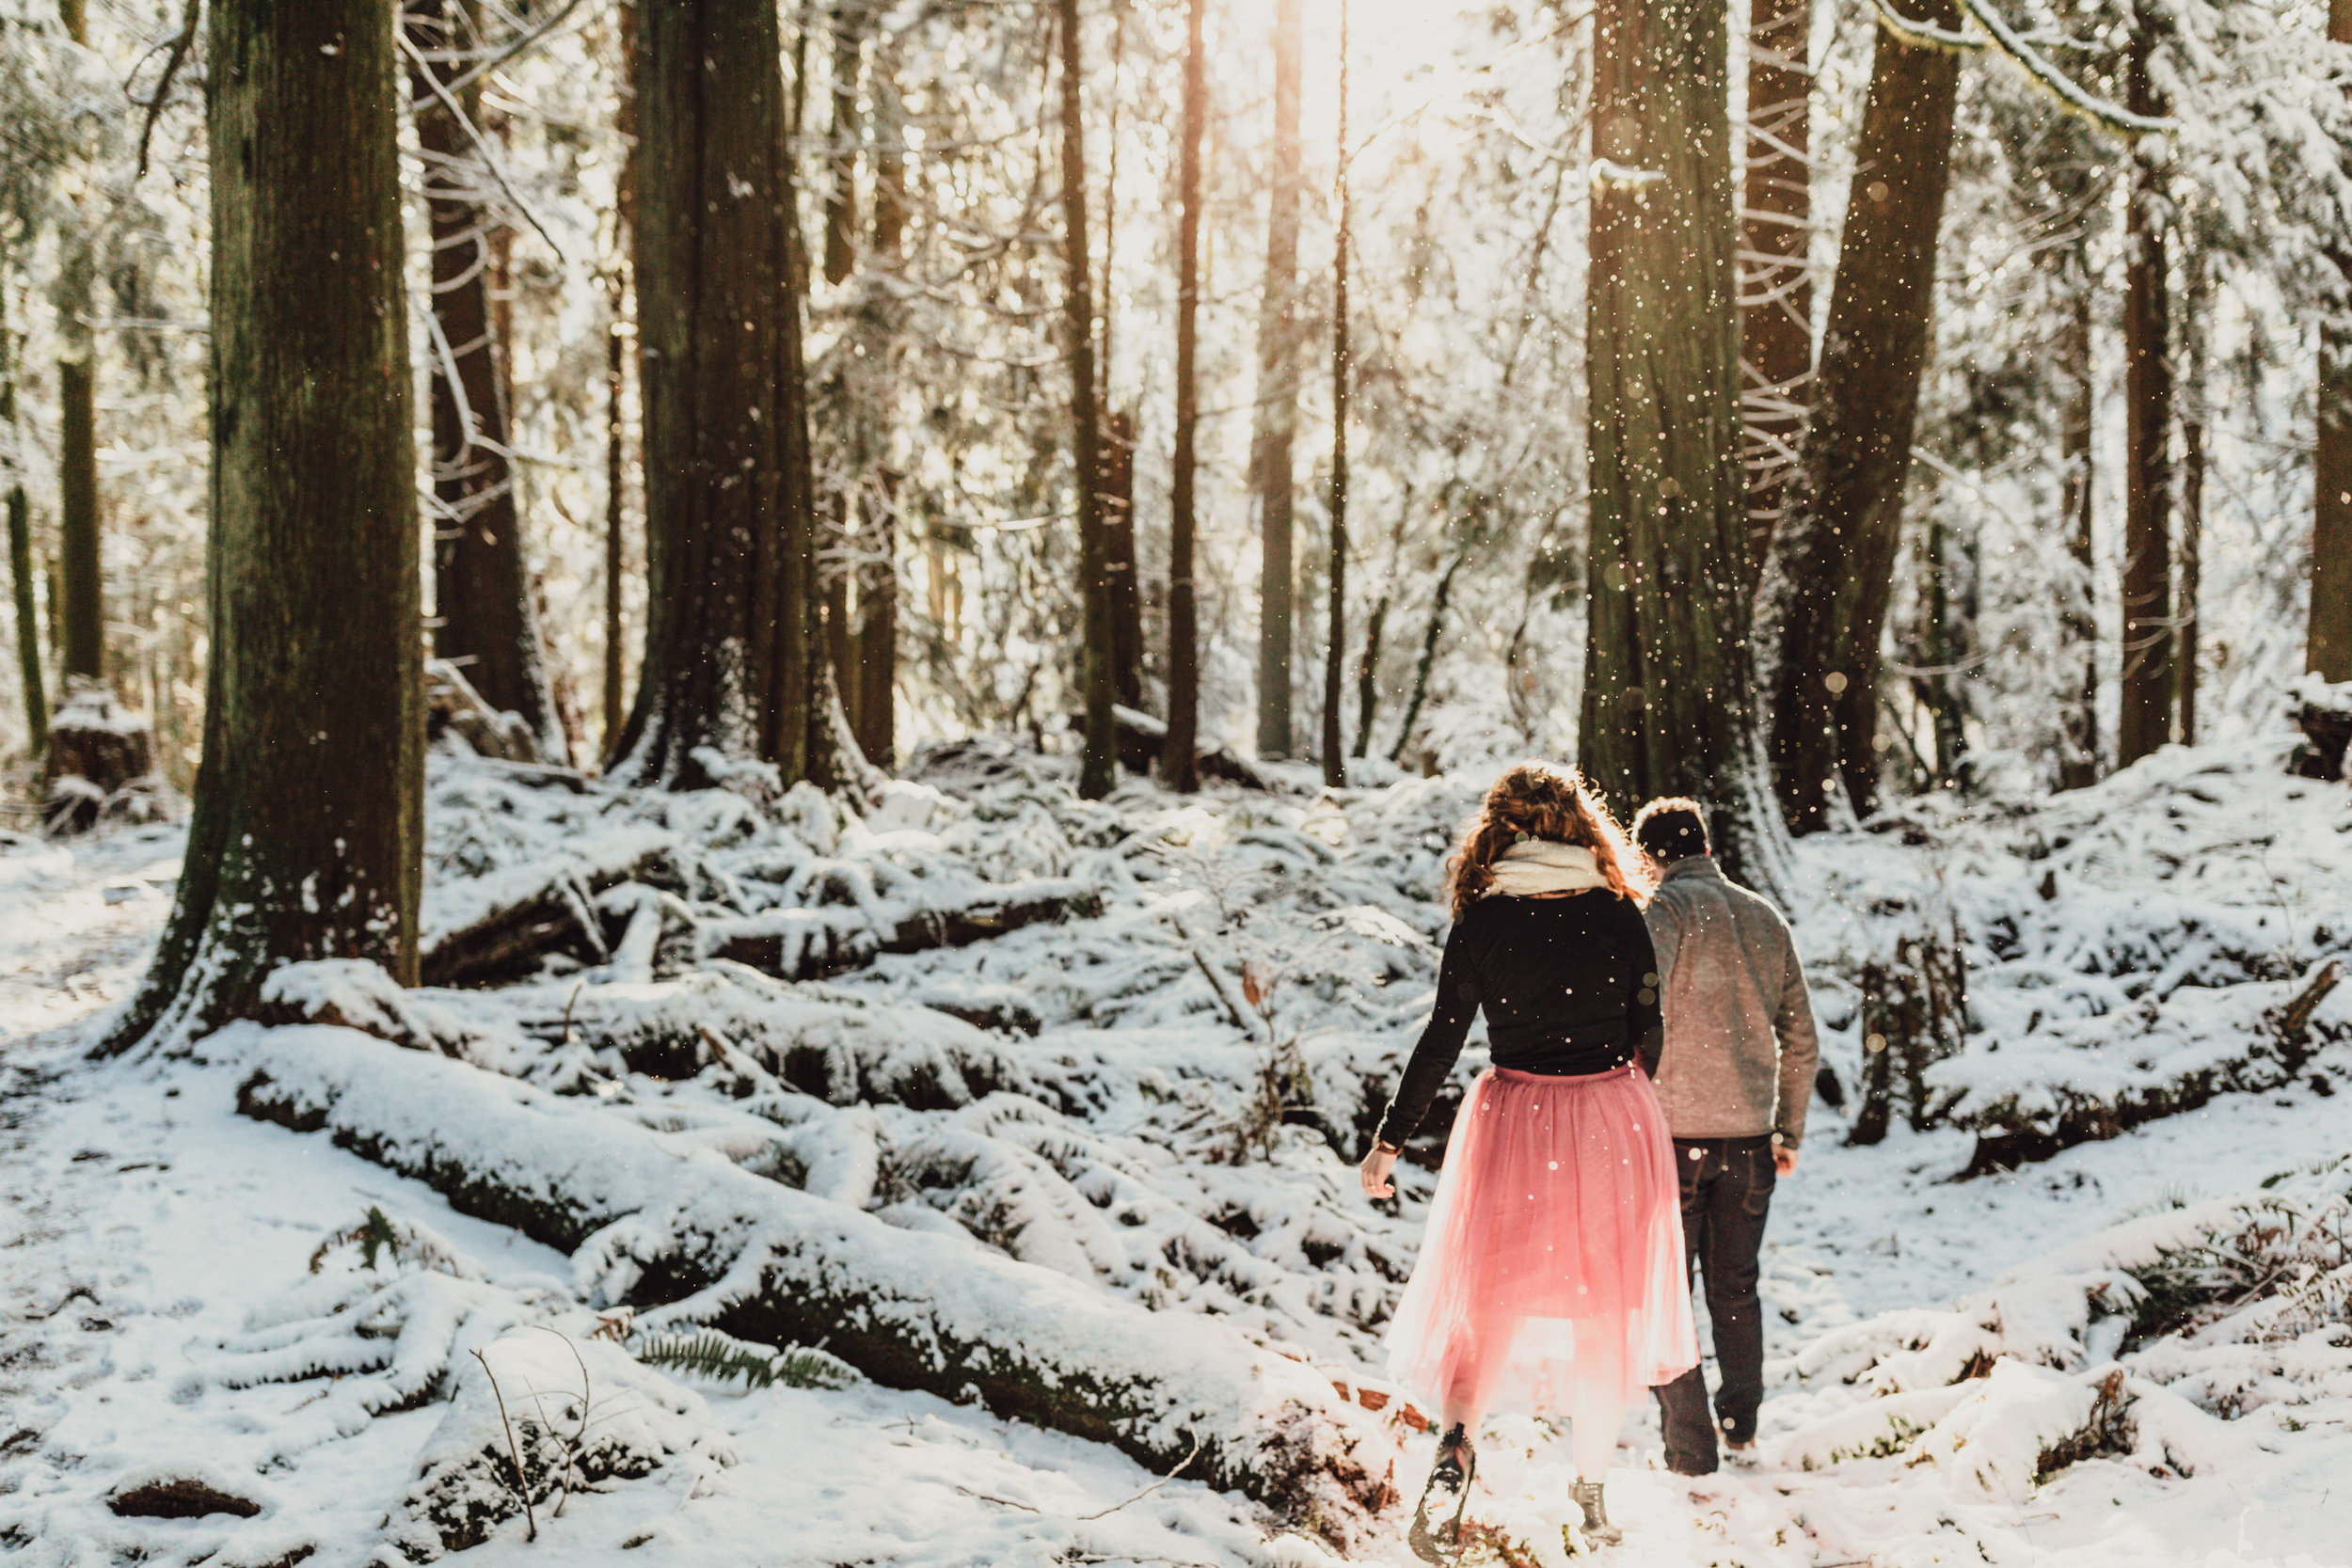 Snowy Engagement Photos - Gibsons Engagement Photos - Sunshine Coast Engagement Photos - Vancouver Wedding Photographer and Videographer - Jennifer Picard Photography064.JPG